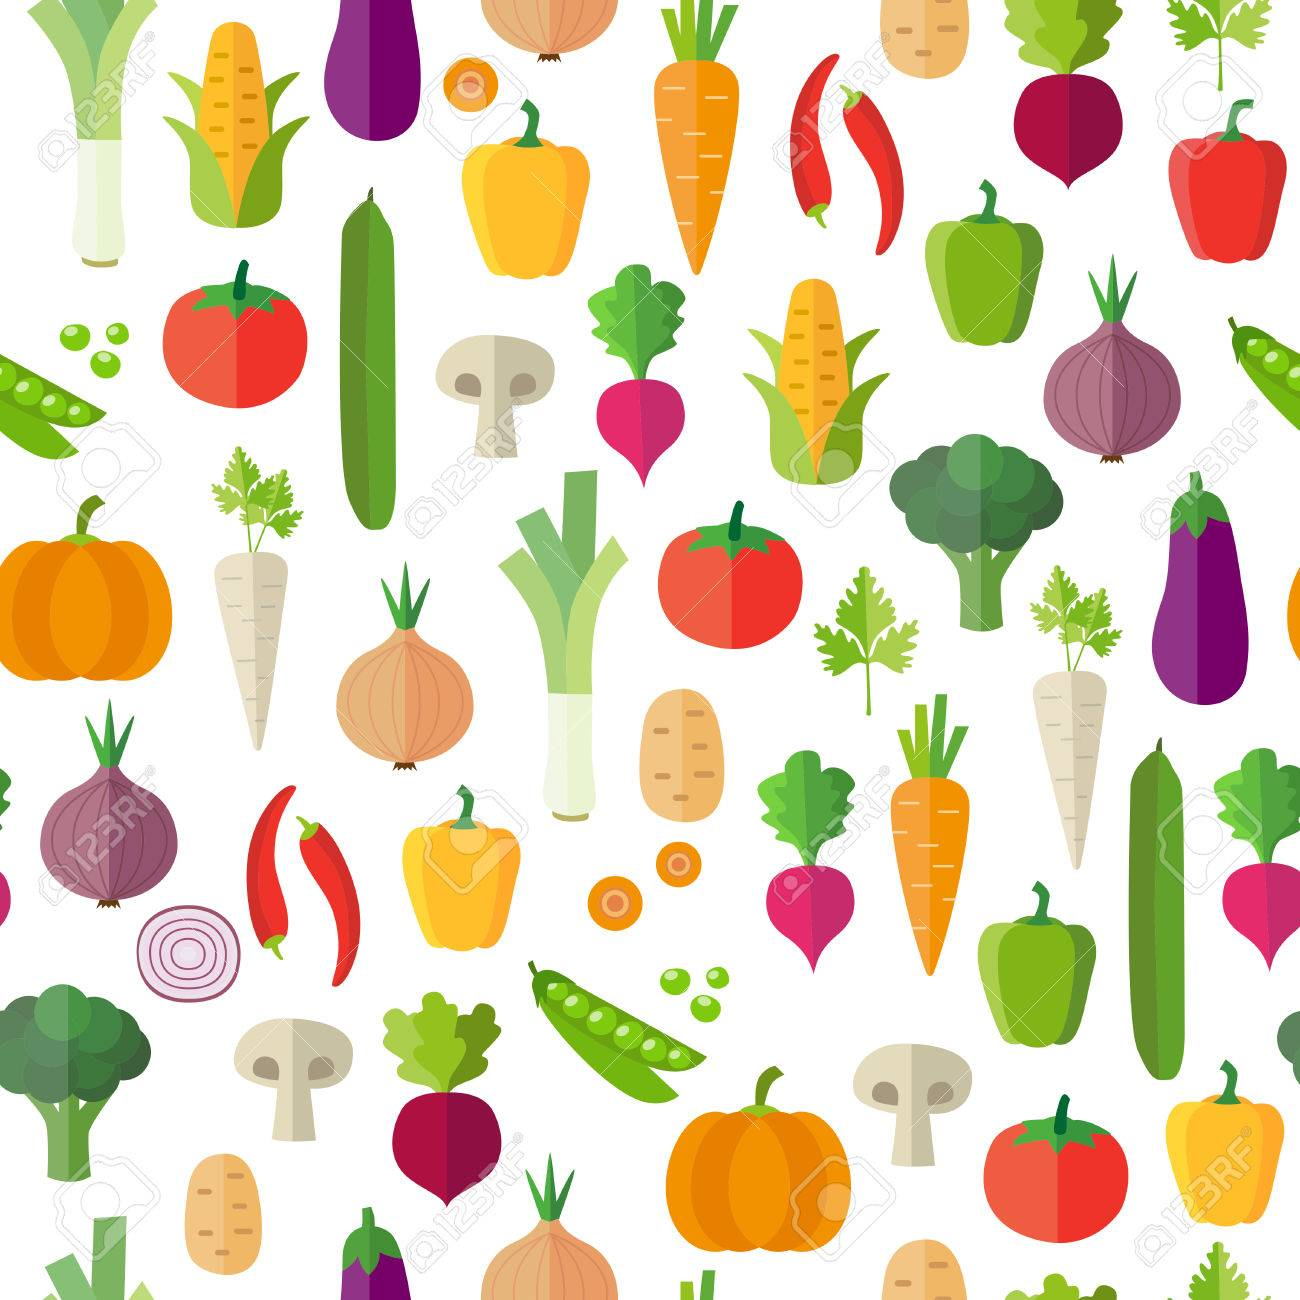 Vegetables Background Seamless Pattern Can Illustrate Topics